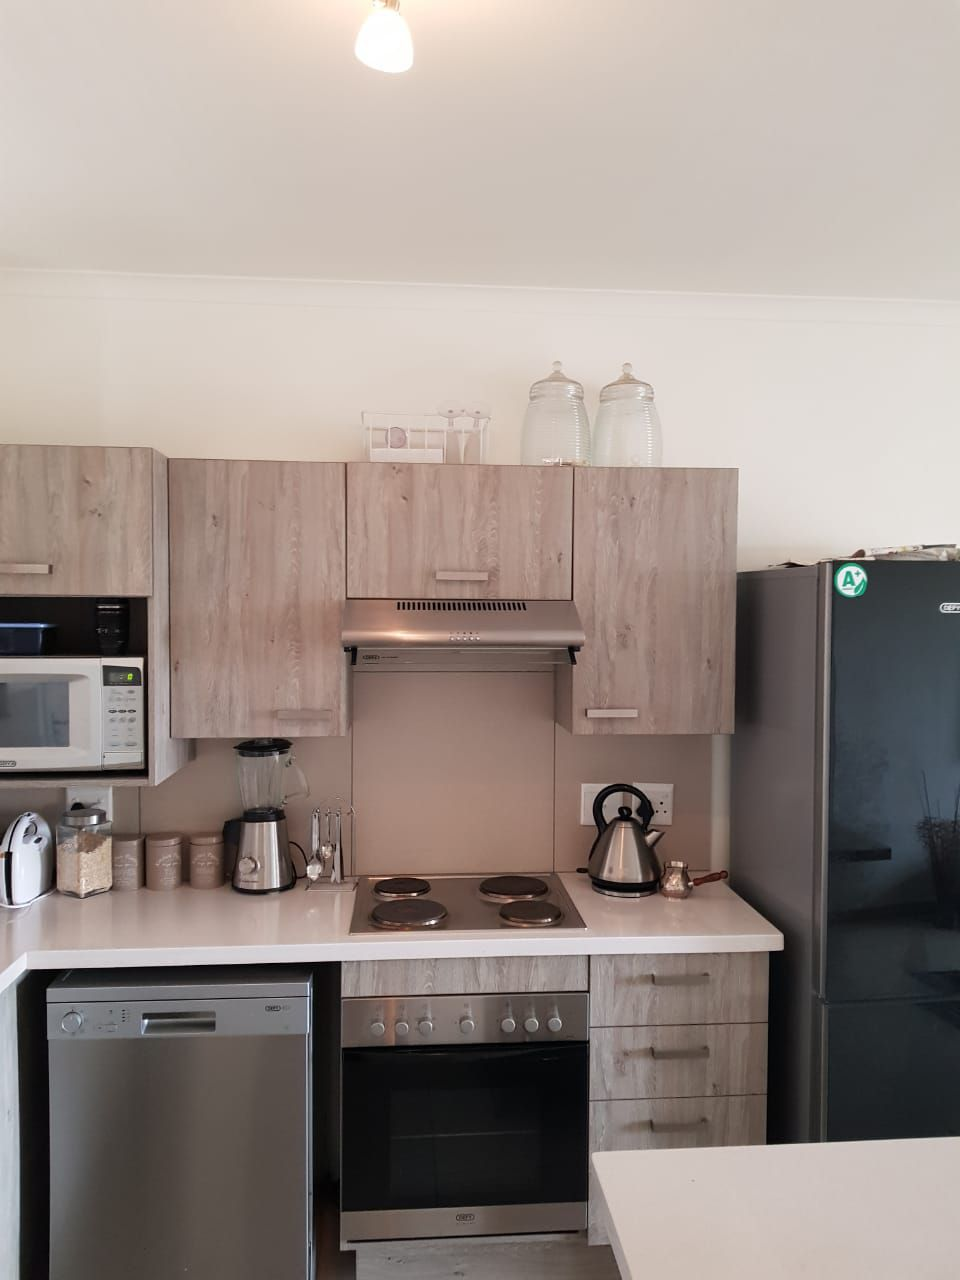 Apartment in Carlswald - PHOTO-2021-01-29-16-33-50.jpg